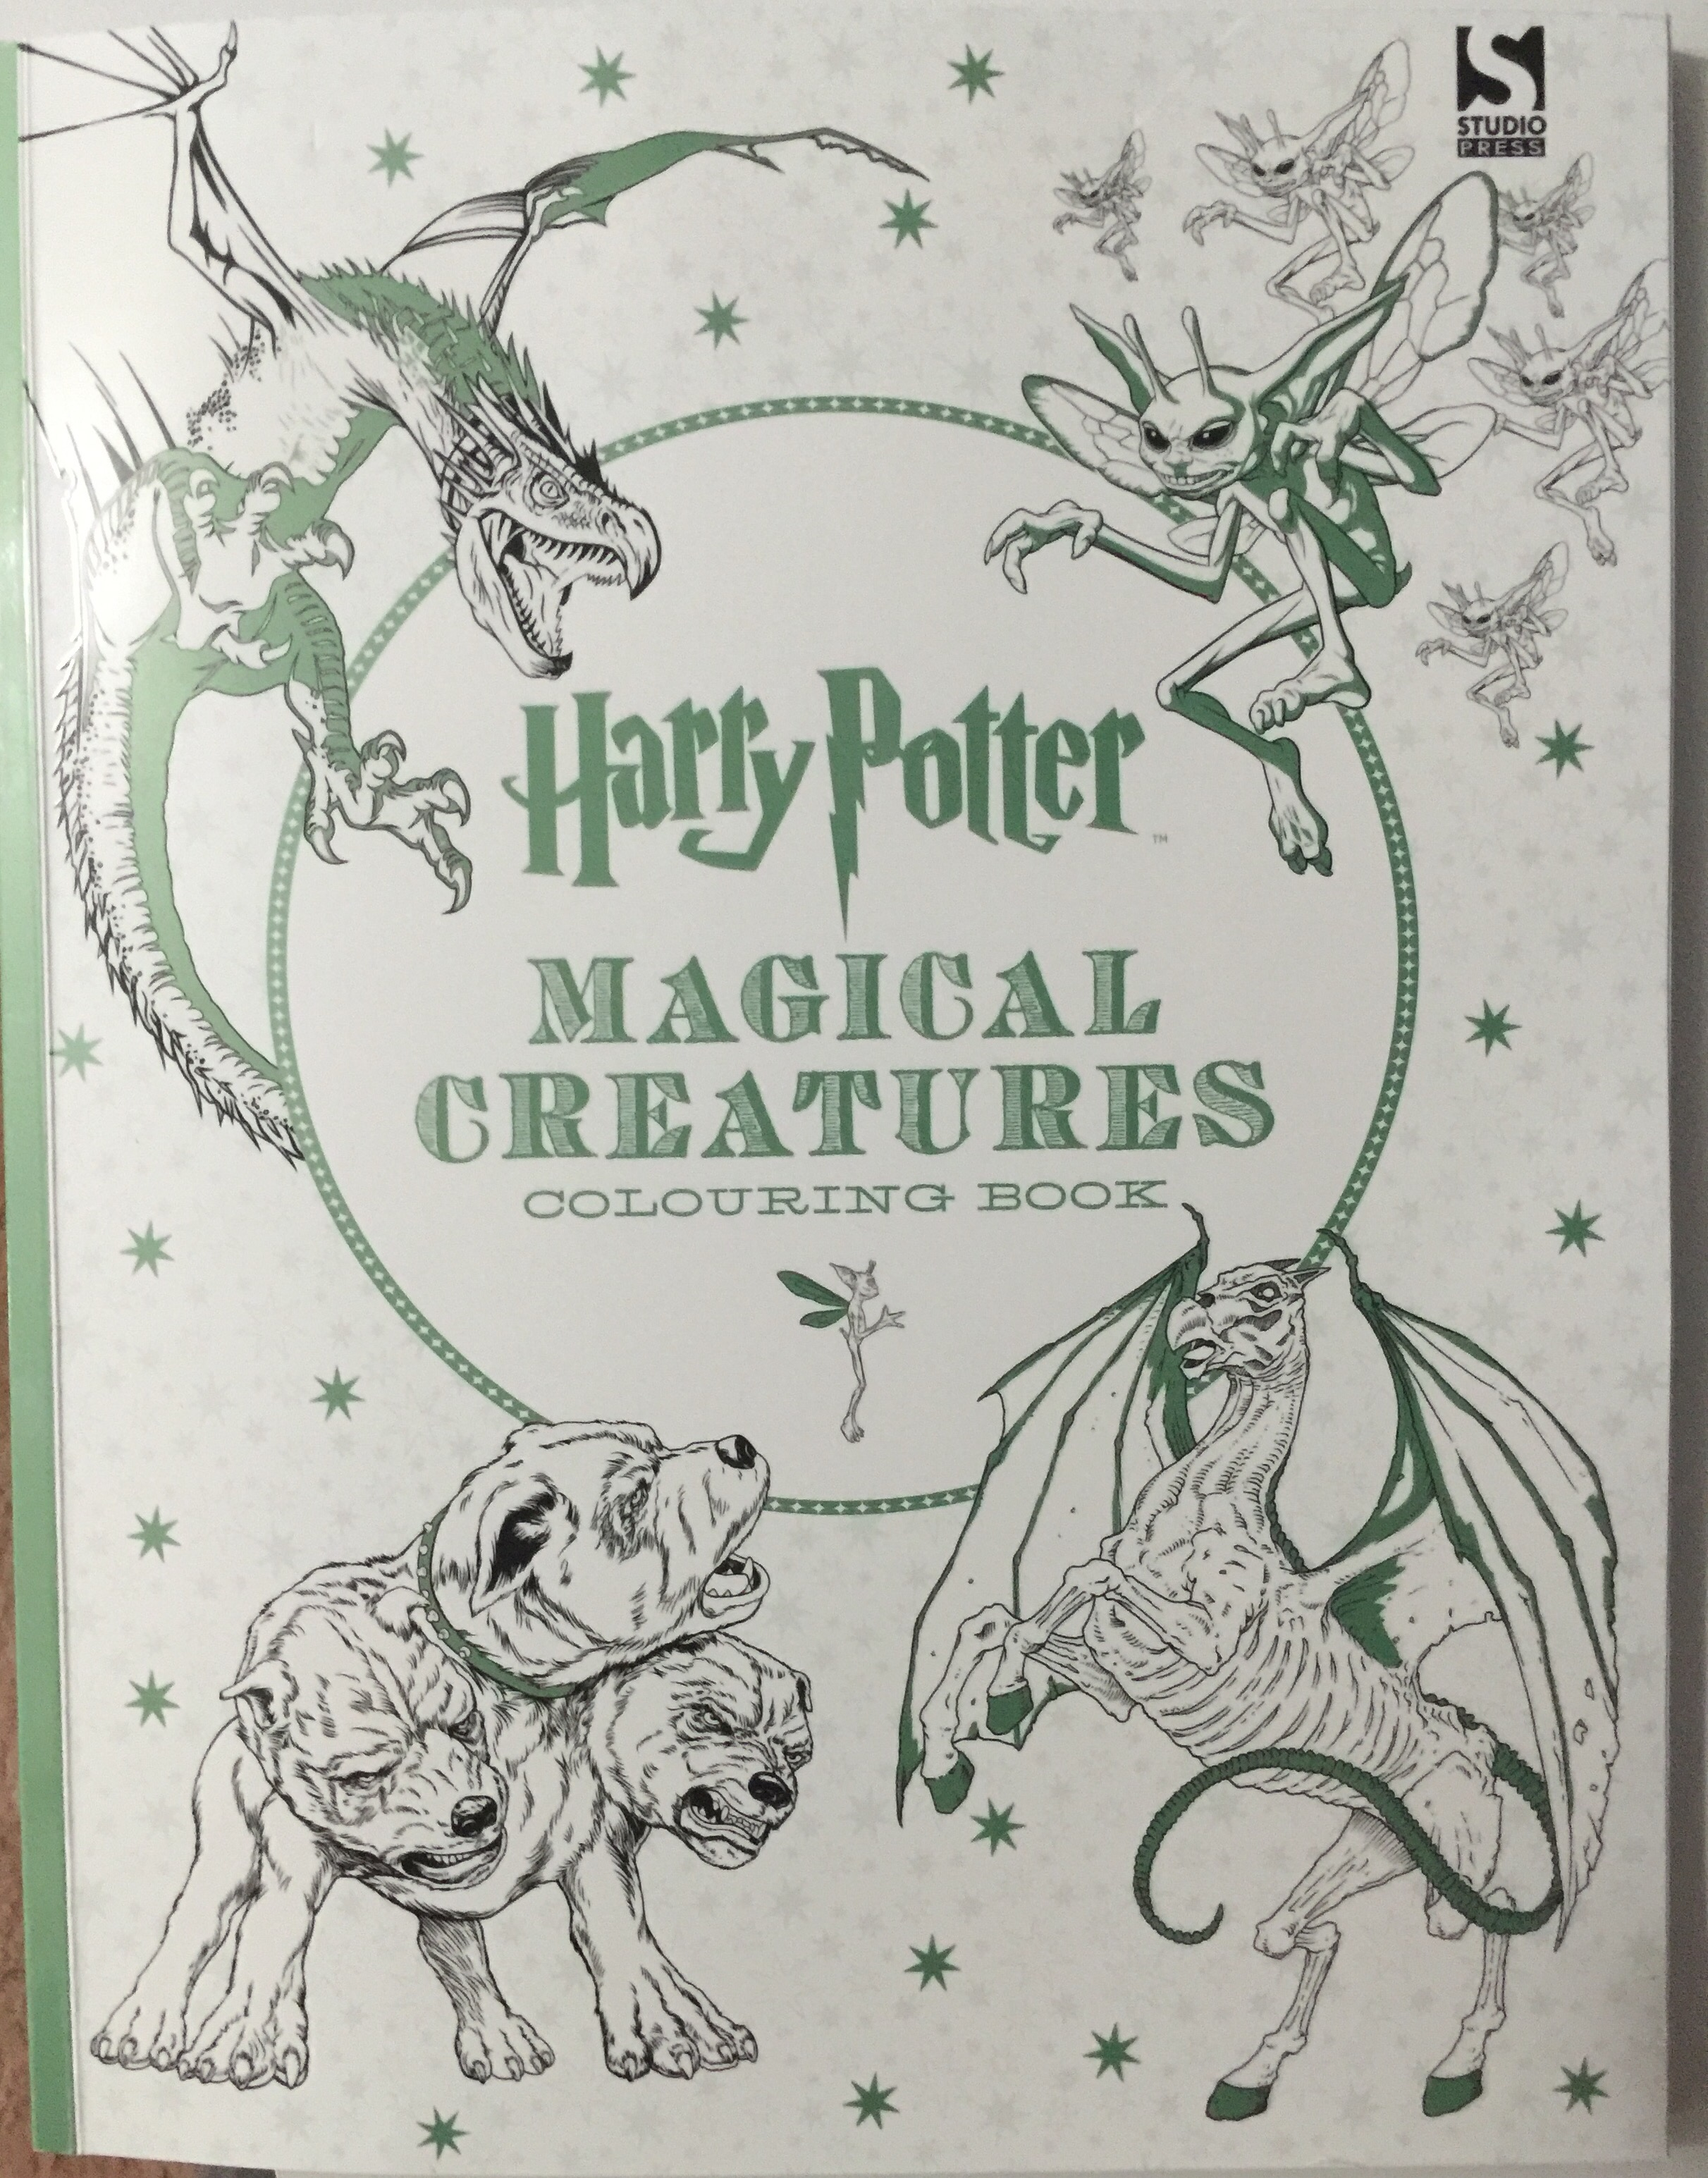 adult coloring harry potter magical creatures colouring mindfulness art therapy anti stress pencils book review